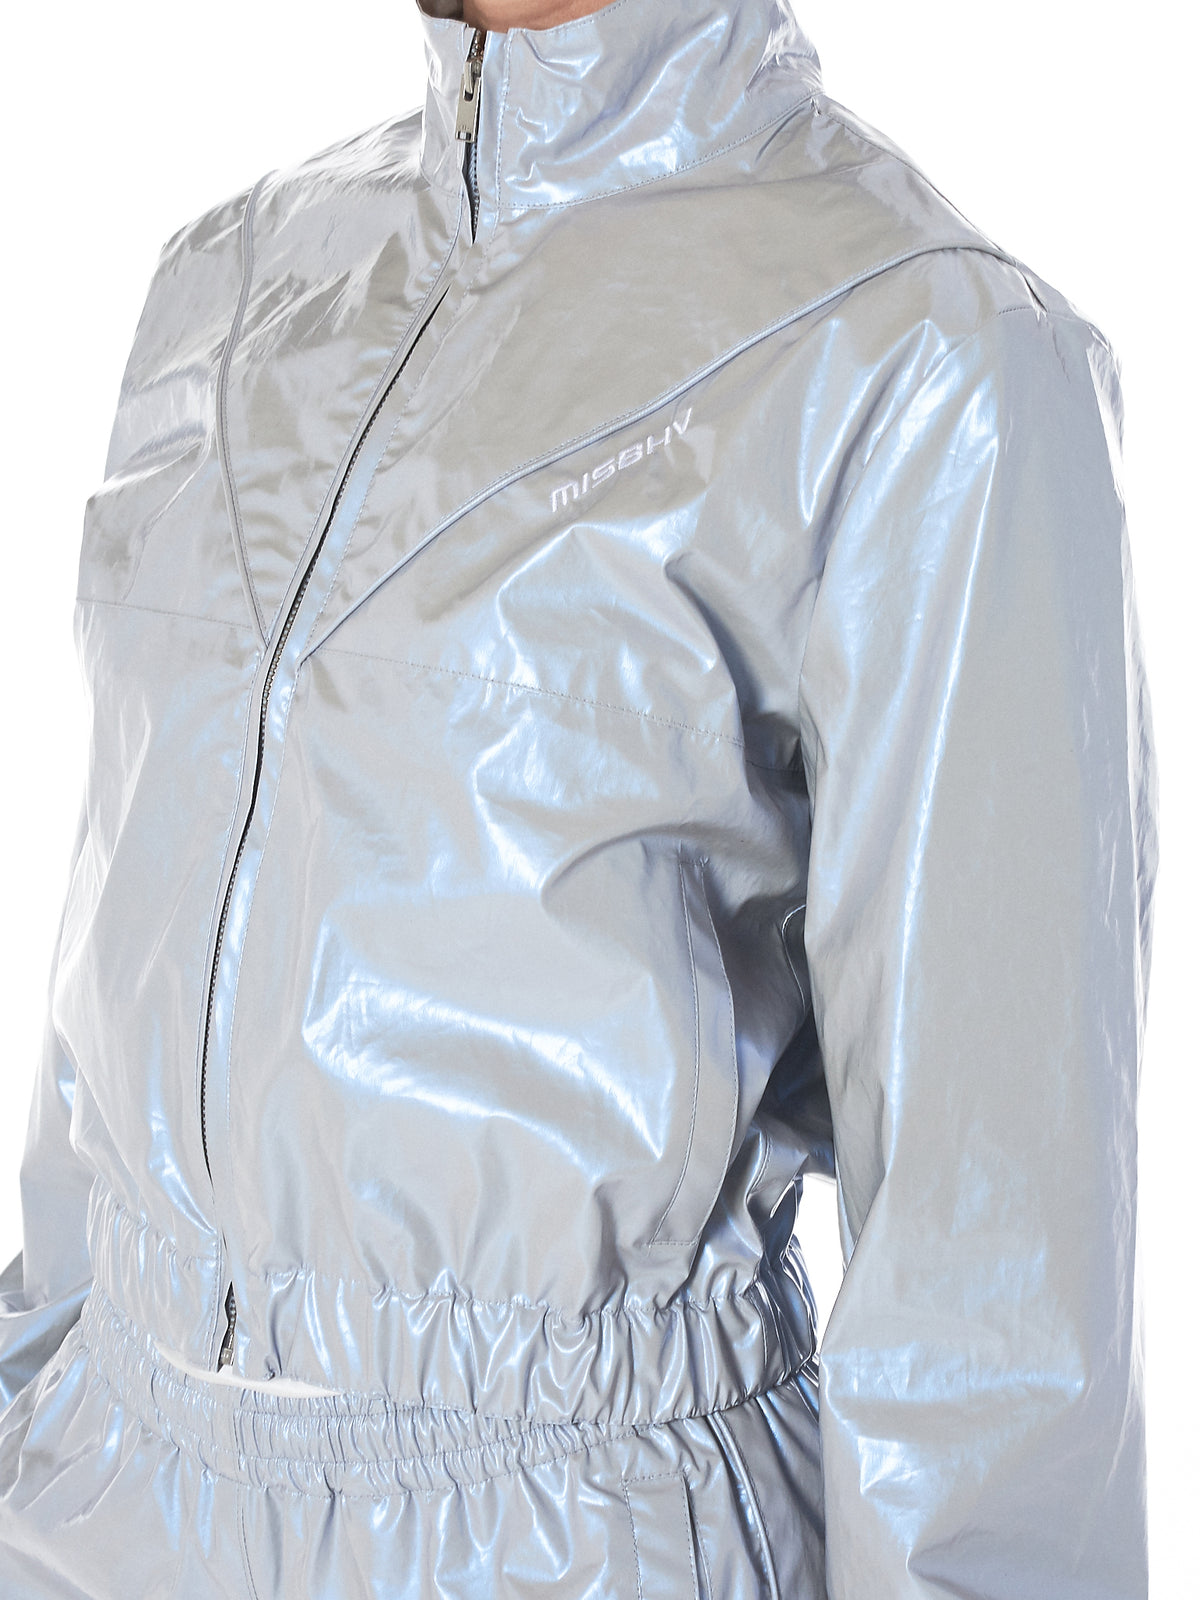 MISBHV metallic track jacket-H.Lorenzo arm detail